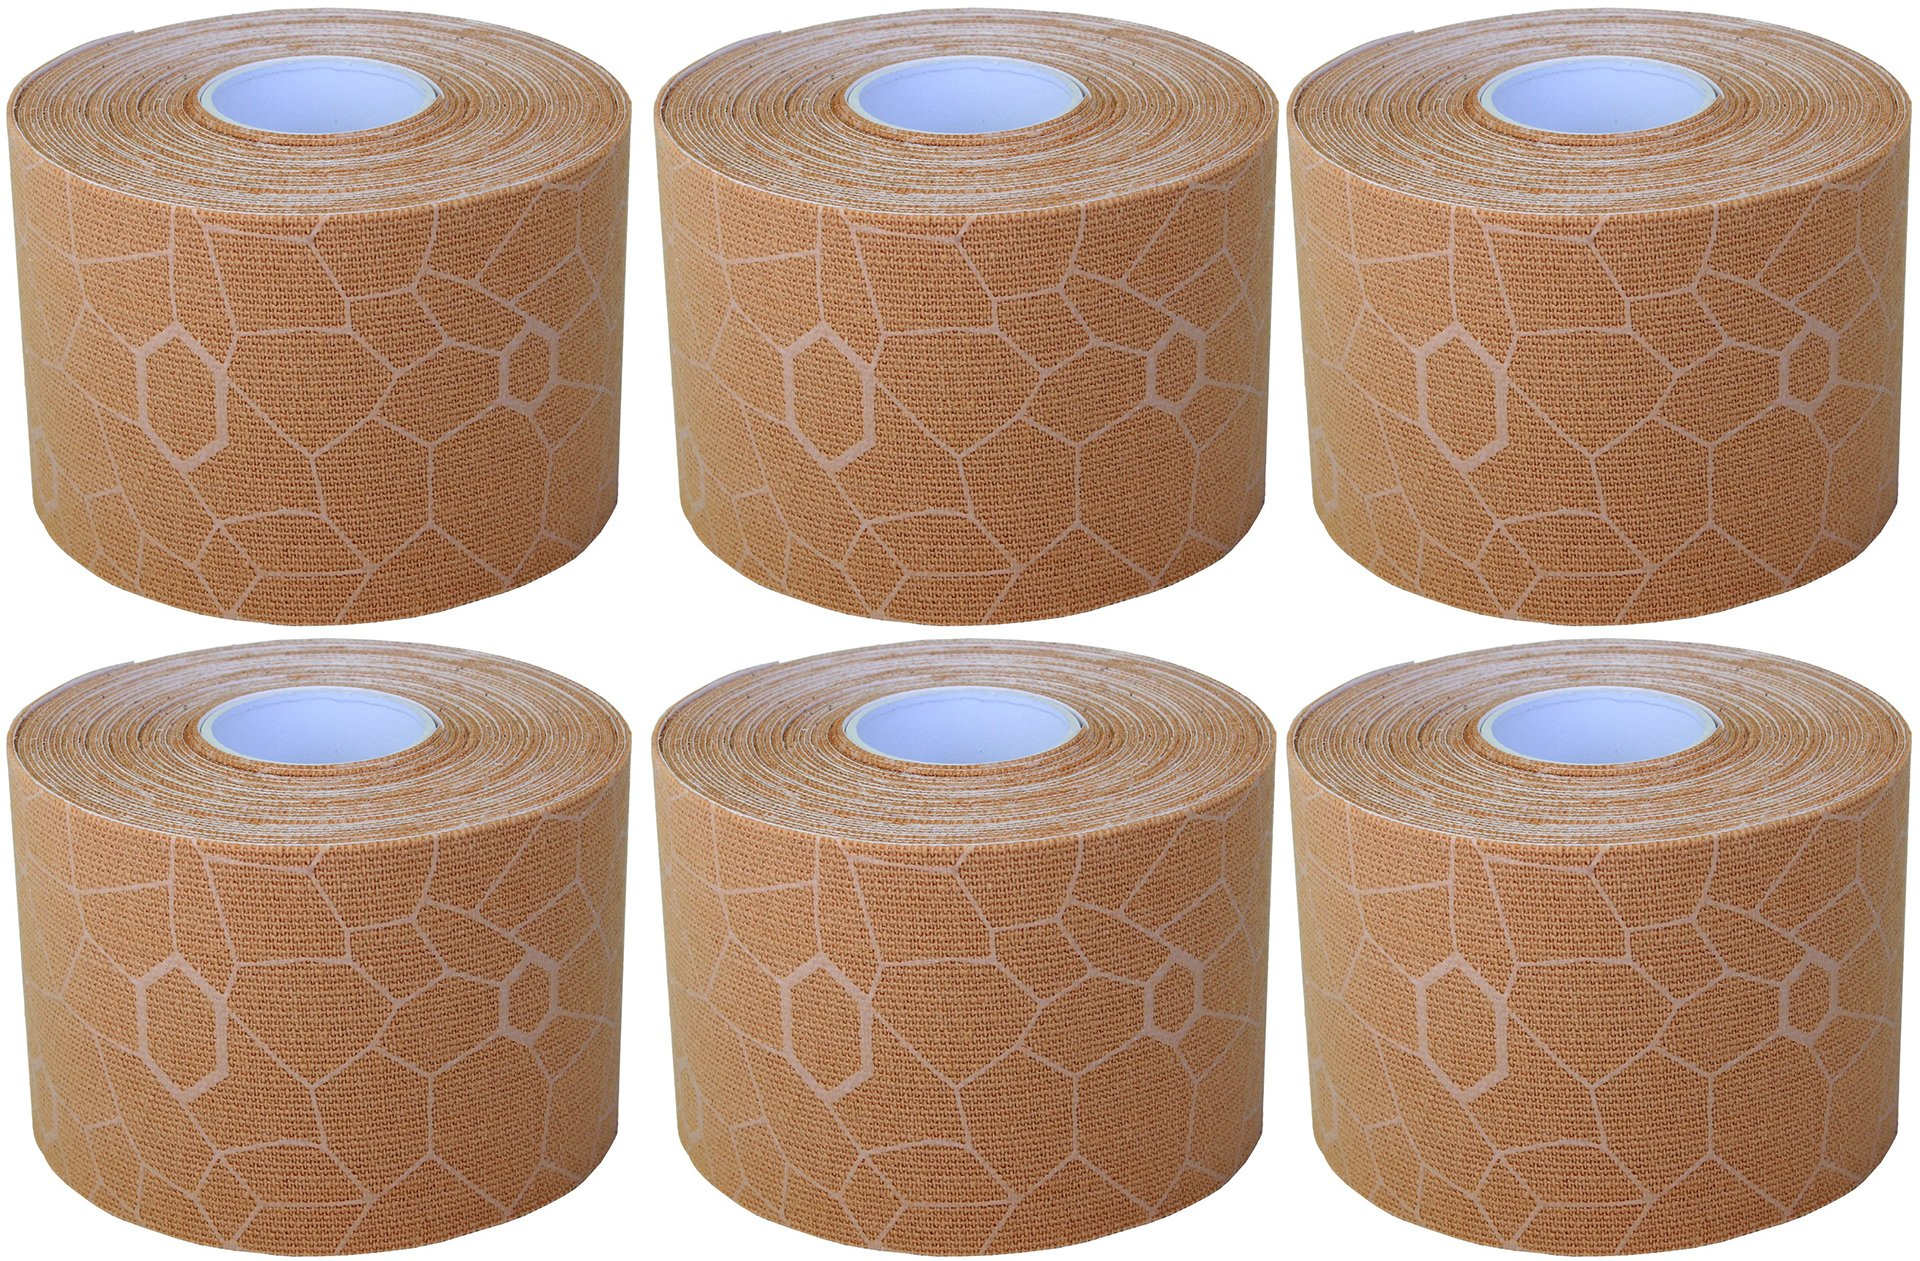 TheraBand Kinesiology Tape, Waterproof Physio Tape for Pain Relief, Muscle & Joint Support, Standard Roll with XactStretch Application Indicators, 2'' X 16.4'' Roll, 6 Pack, Beige/Beige